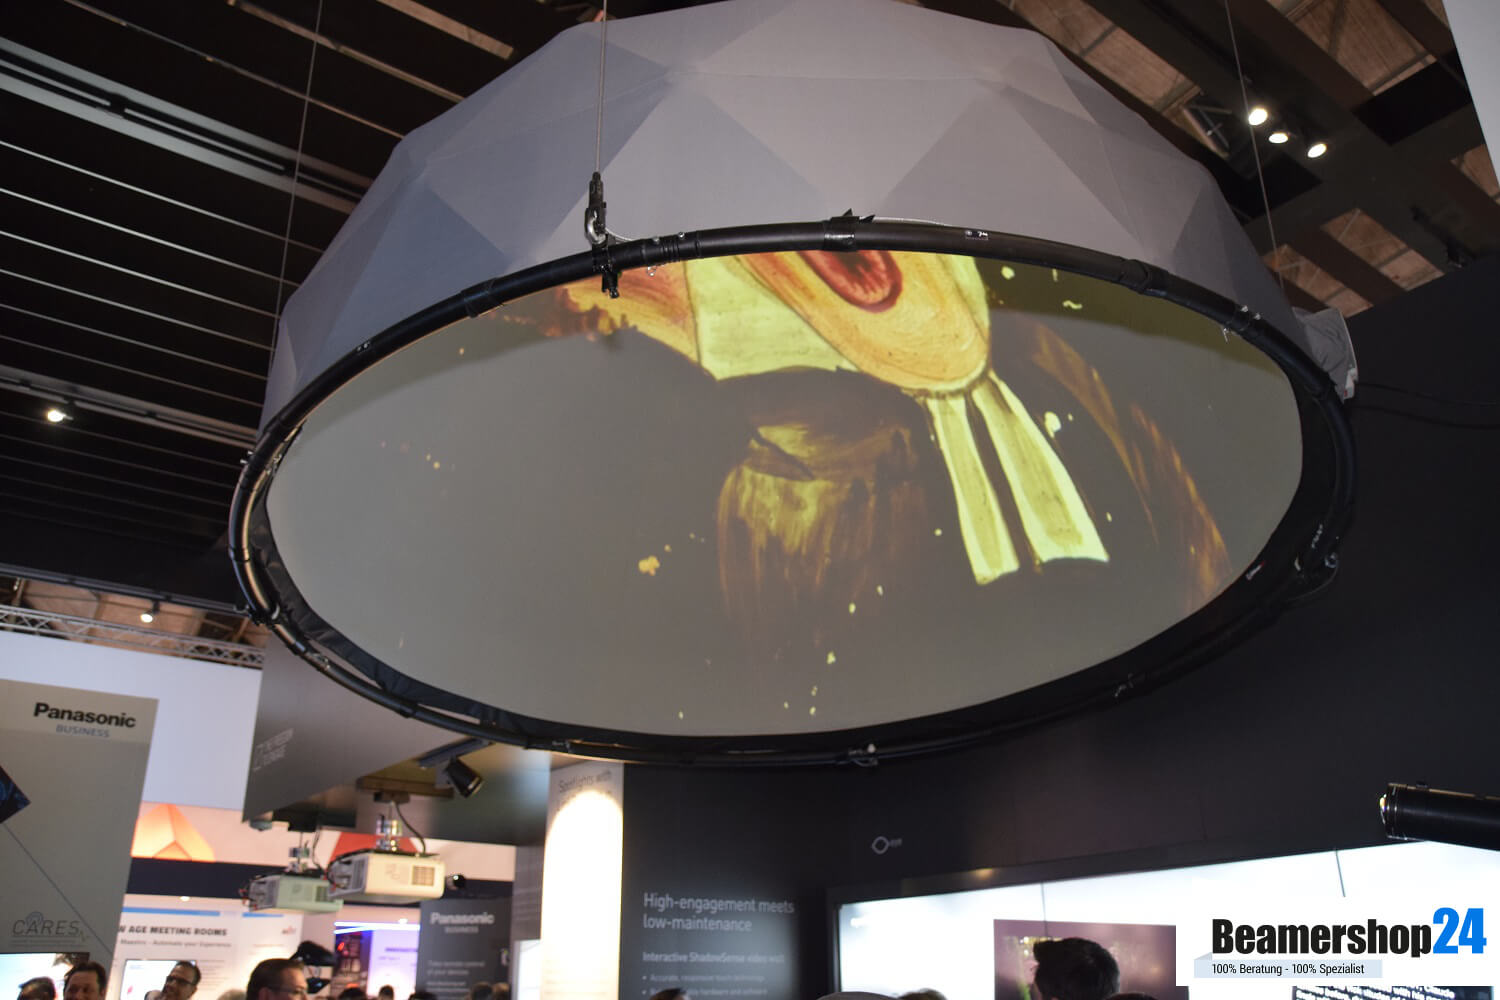 Panasonic ISE 2018 Dome Projektion